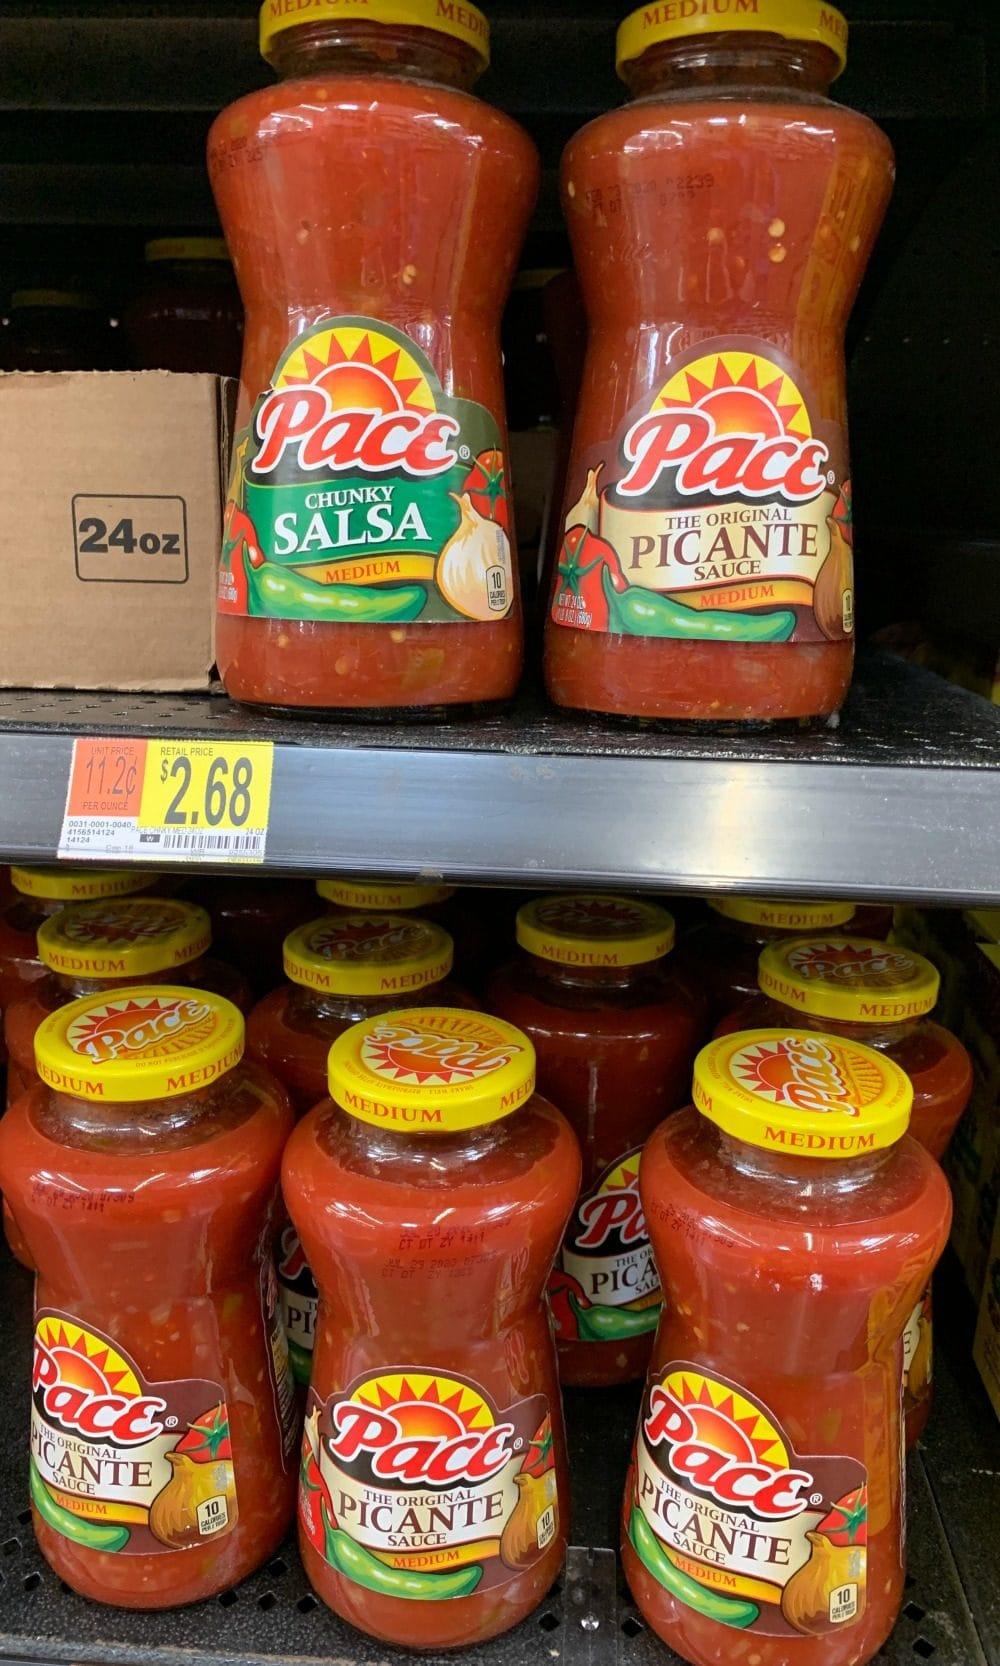 Pace salsa on the shelves of Walmart